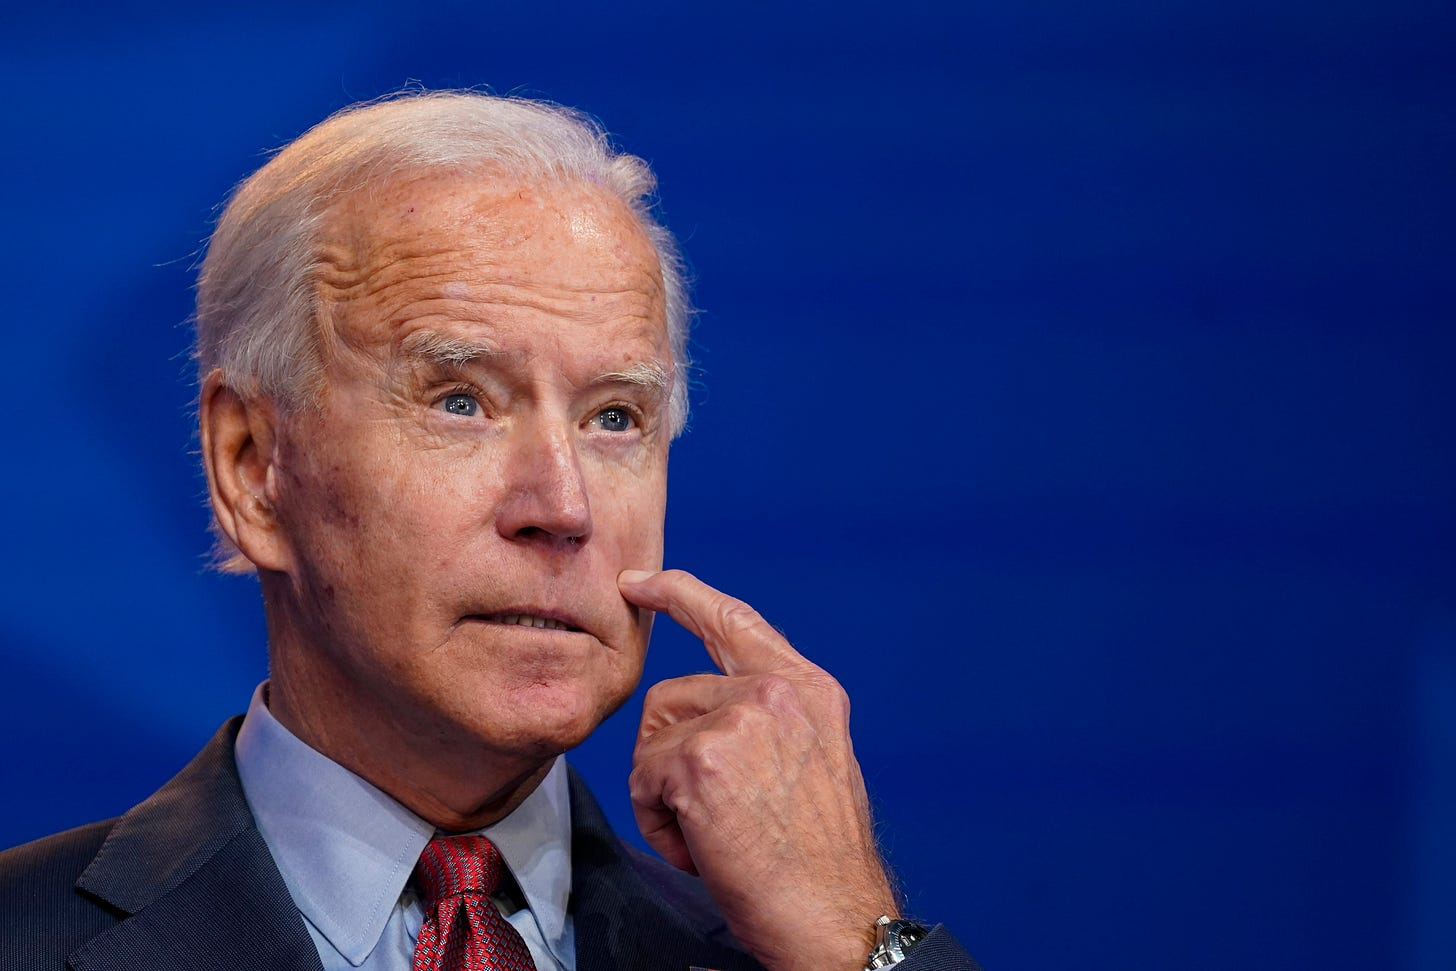 Biden story was censored by main stream media, and now the Intercept